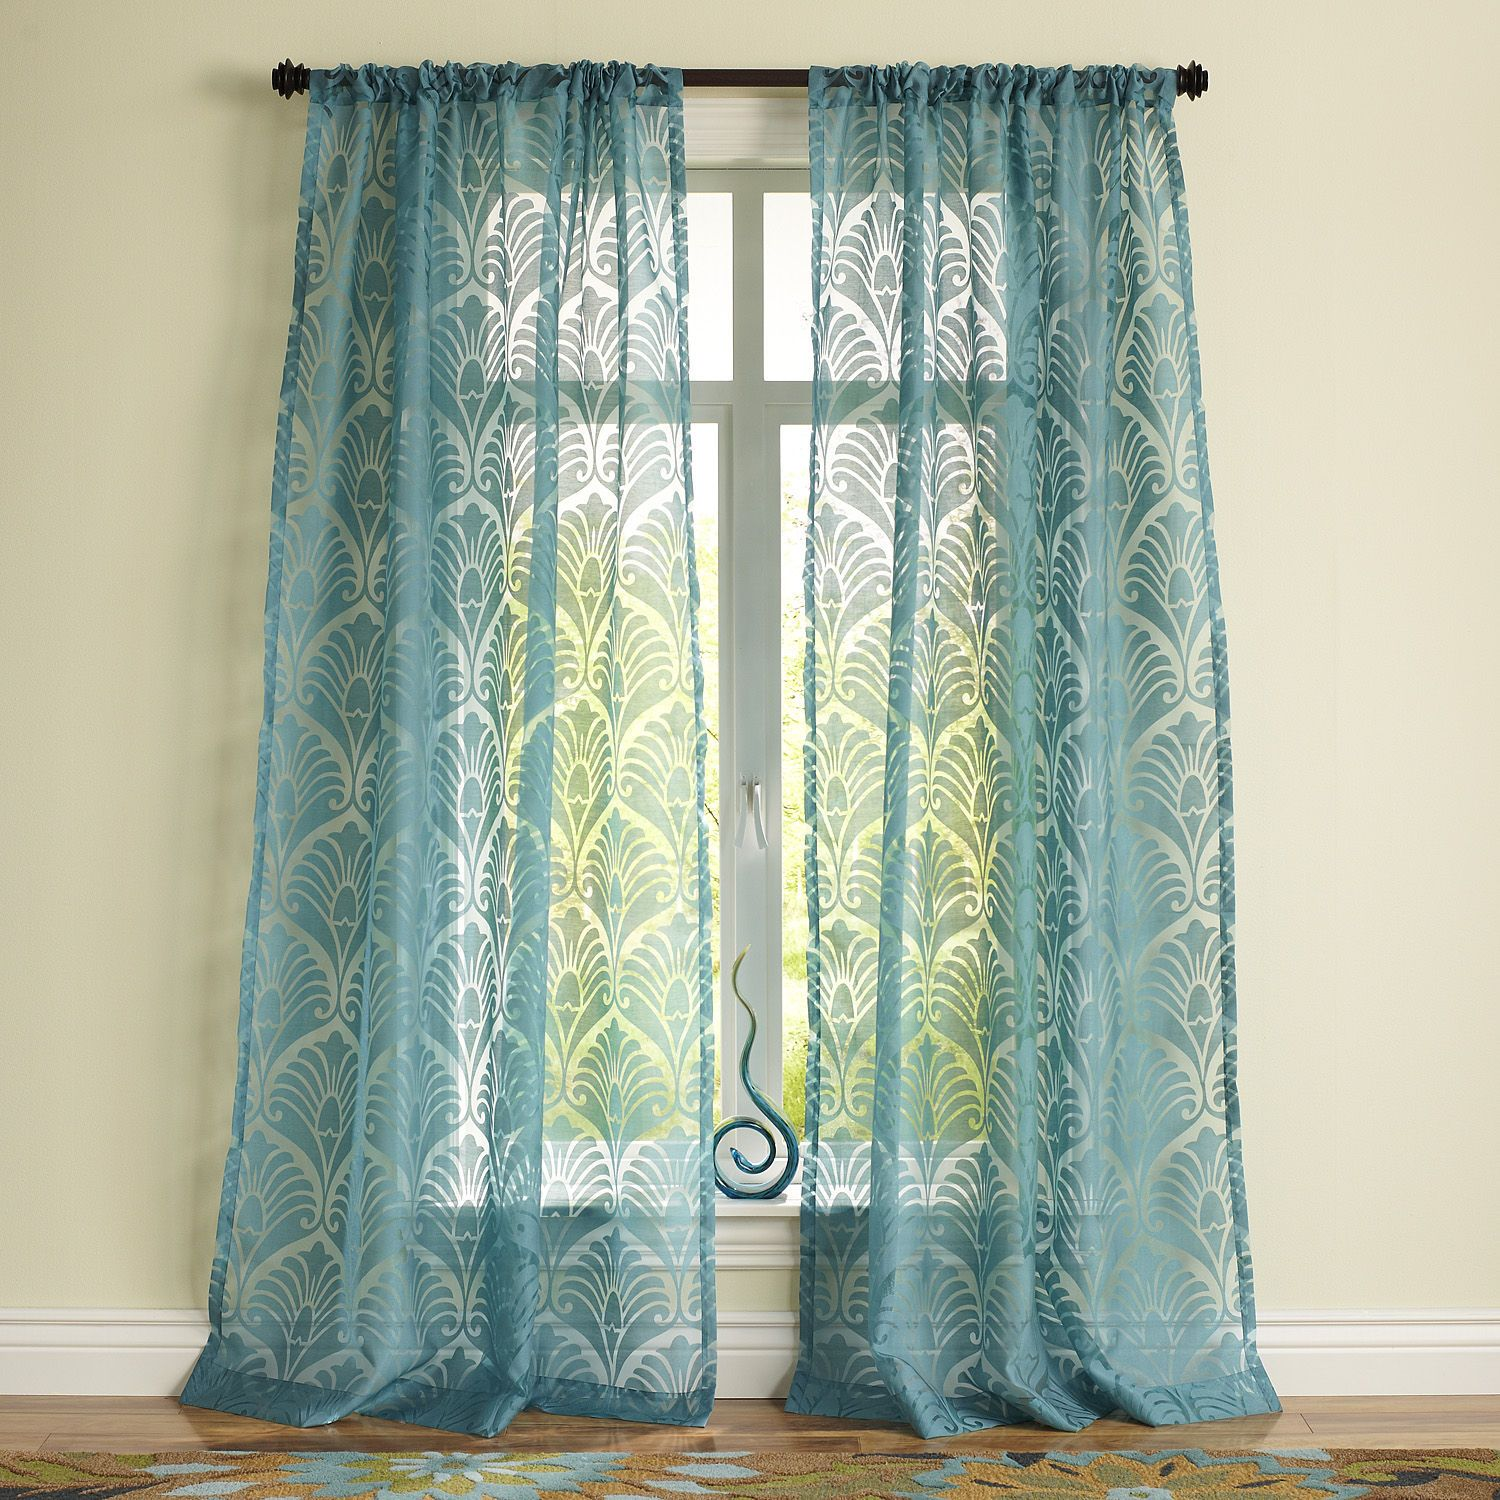 Peacock Burnout Curtain Pier 1 Imports Case Alicia